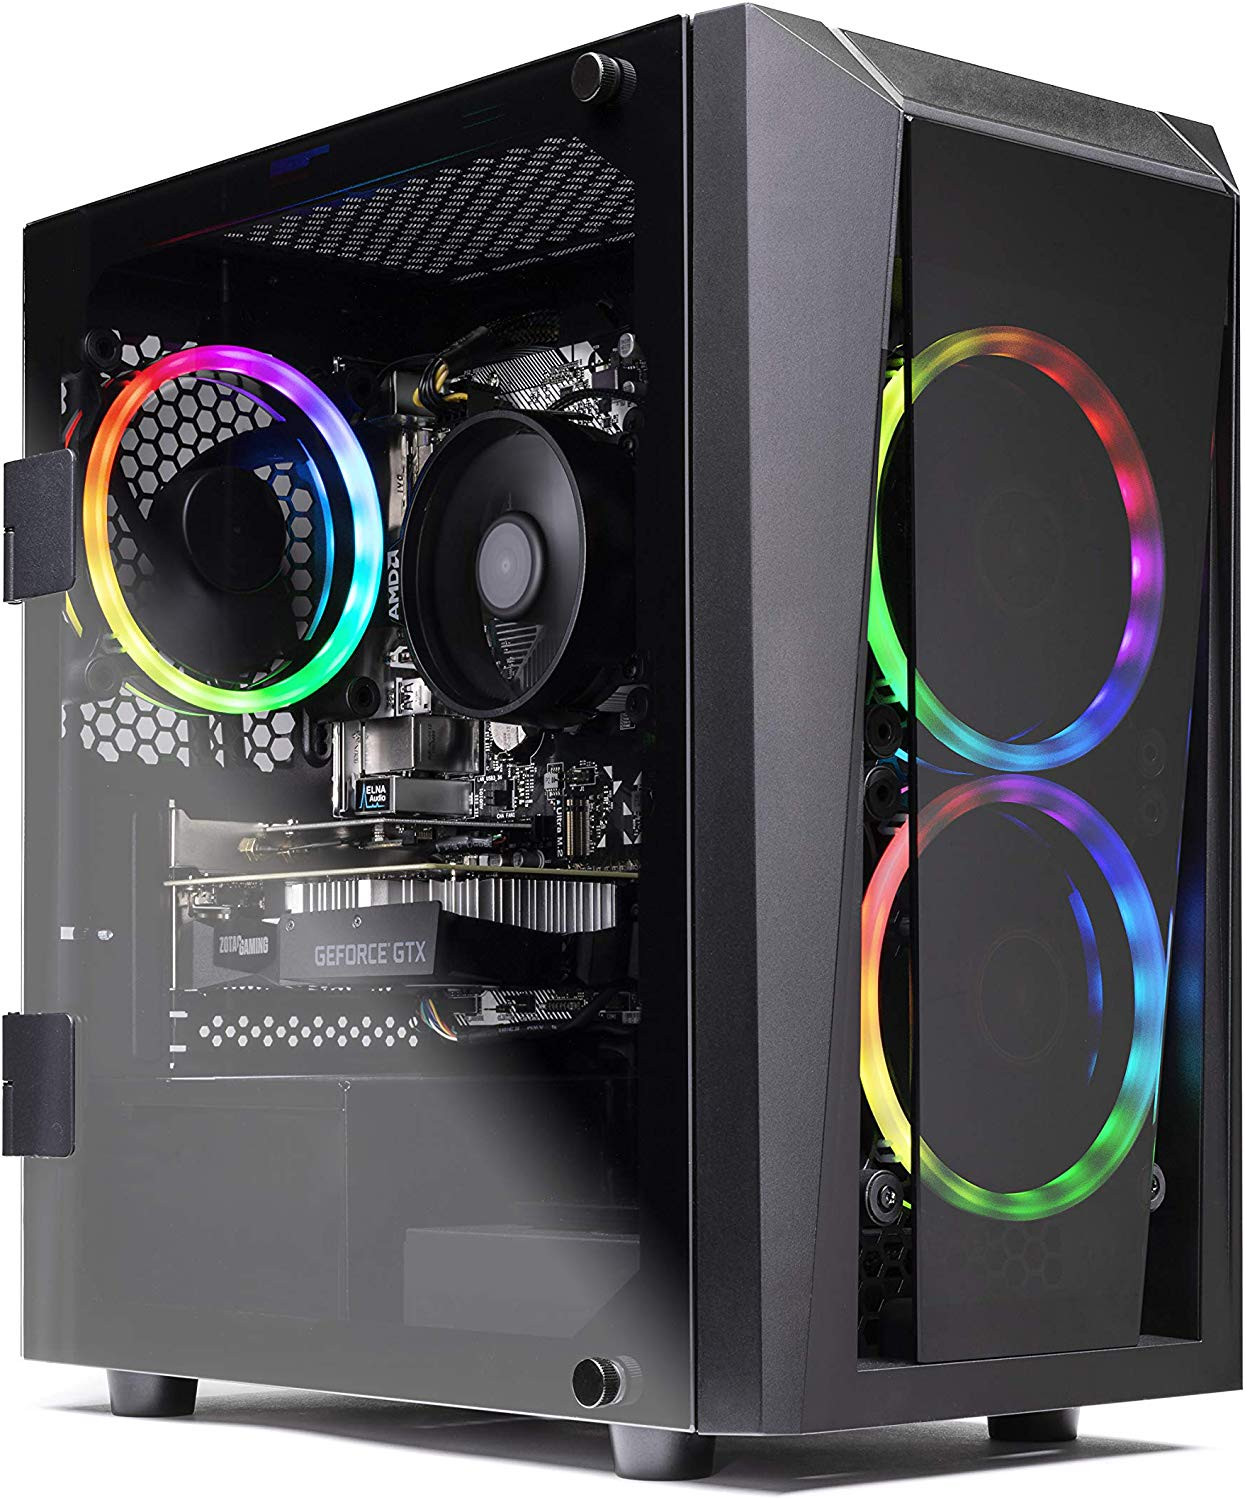 SkyTech Blaze II Gaming Computer PC Desktop